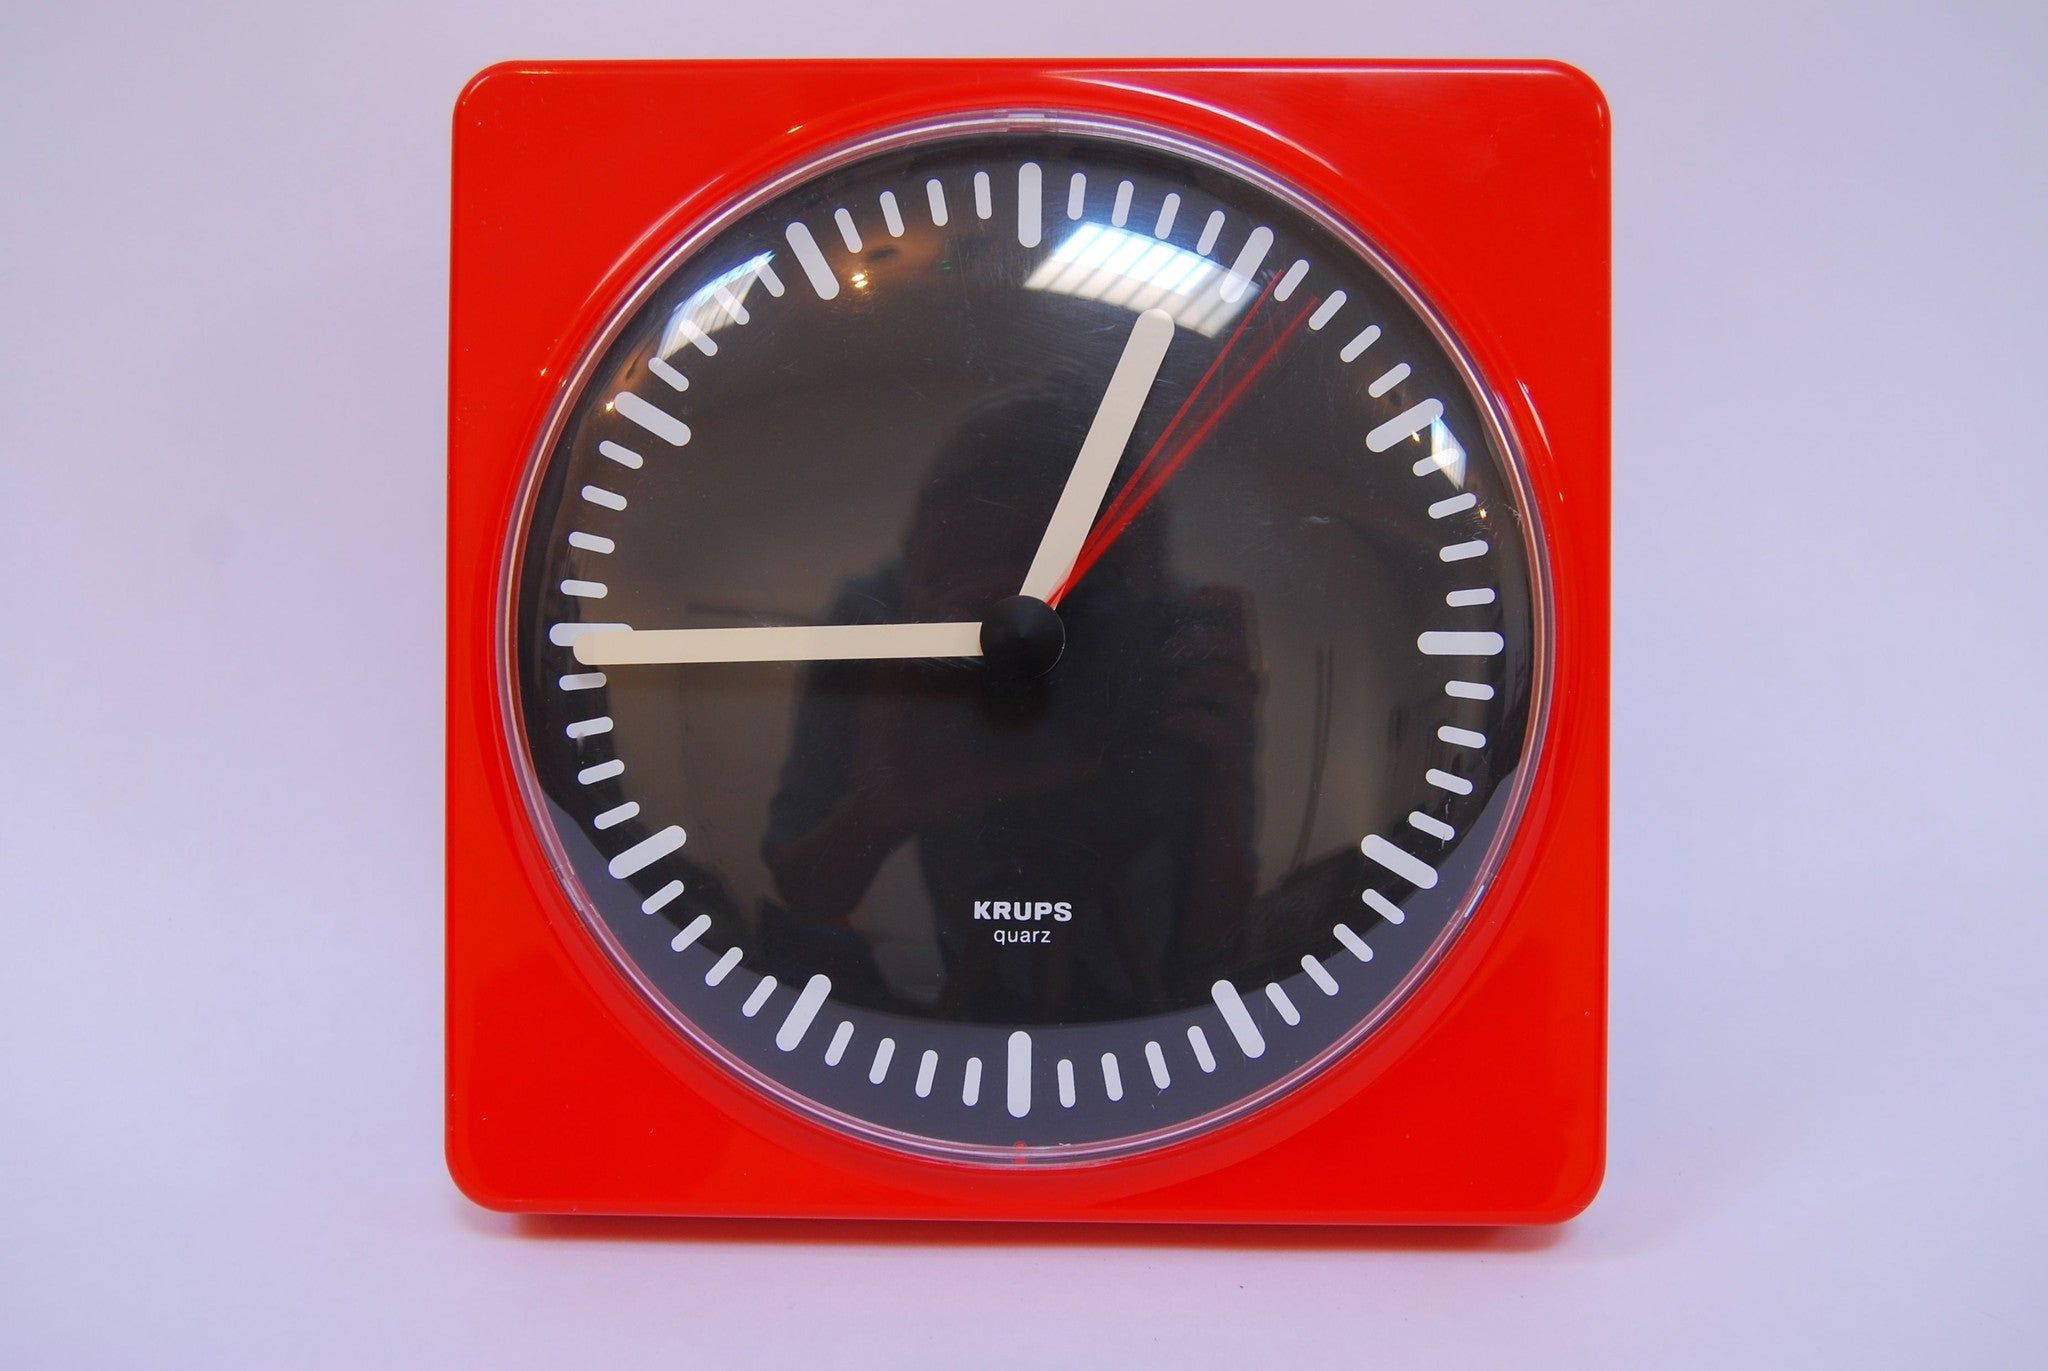 Wall clock by KRUPS